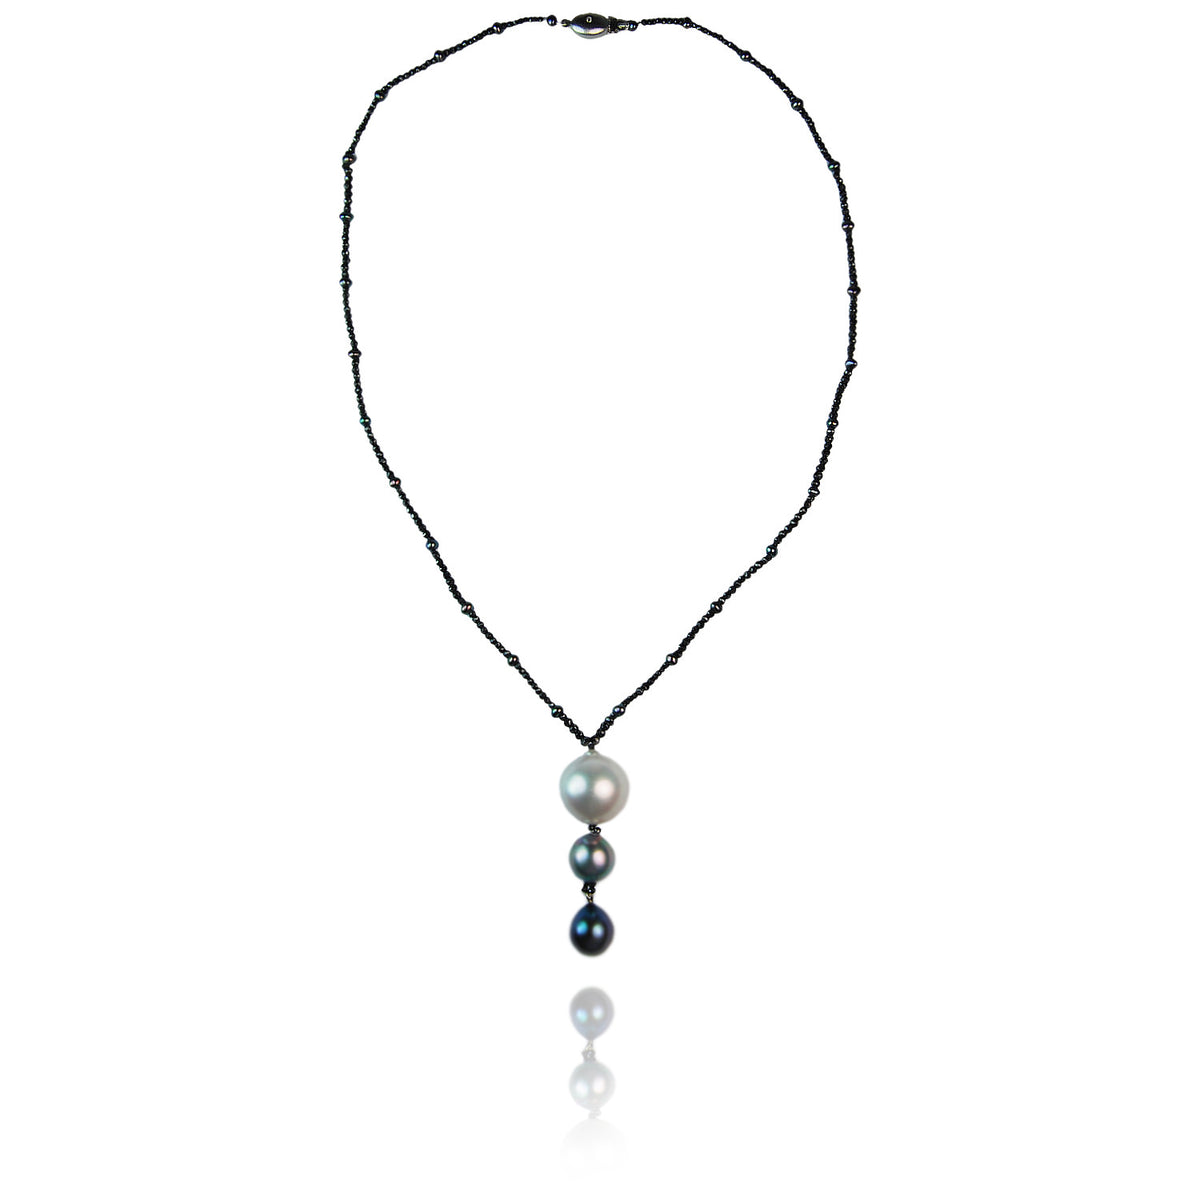 Black Diamond Necklace  With South Sea And Tahitian Pearl Pendant Drop